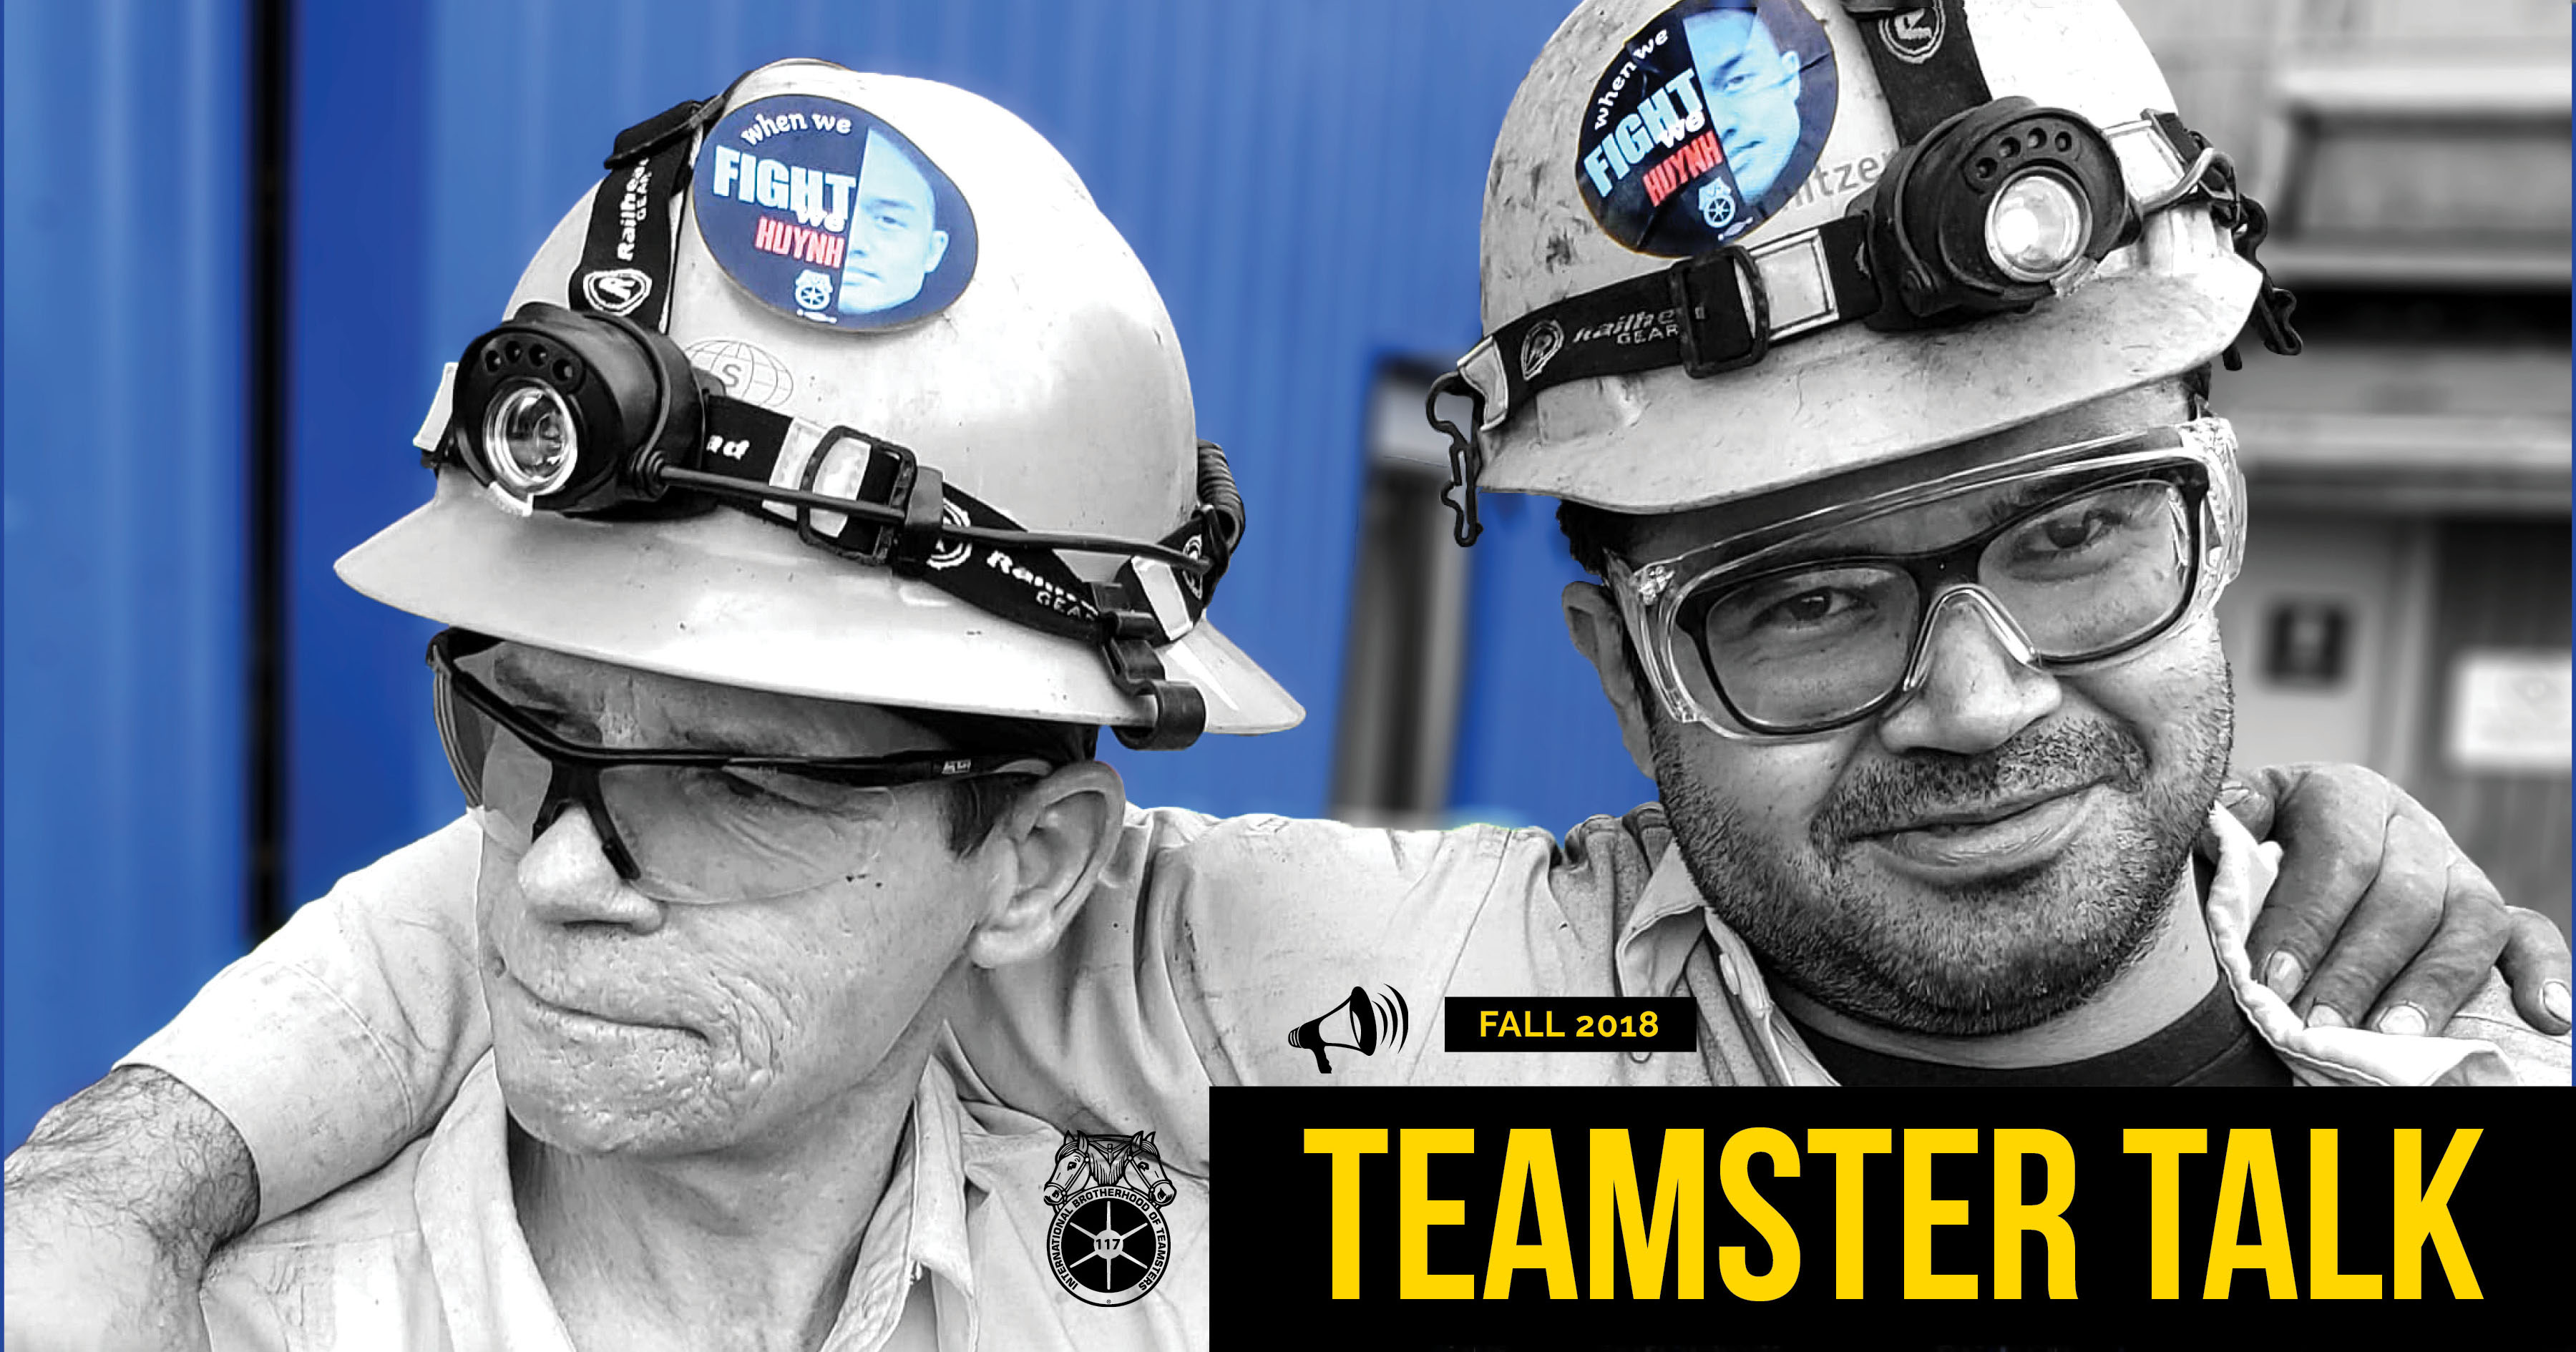 Teamster Talk image